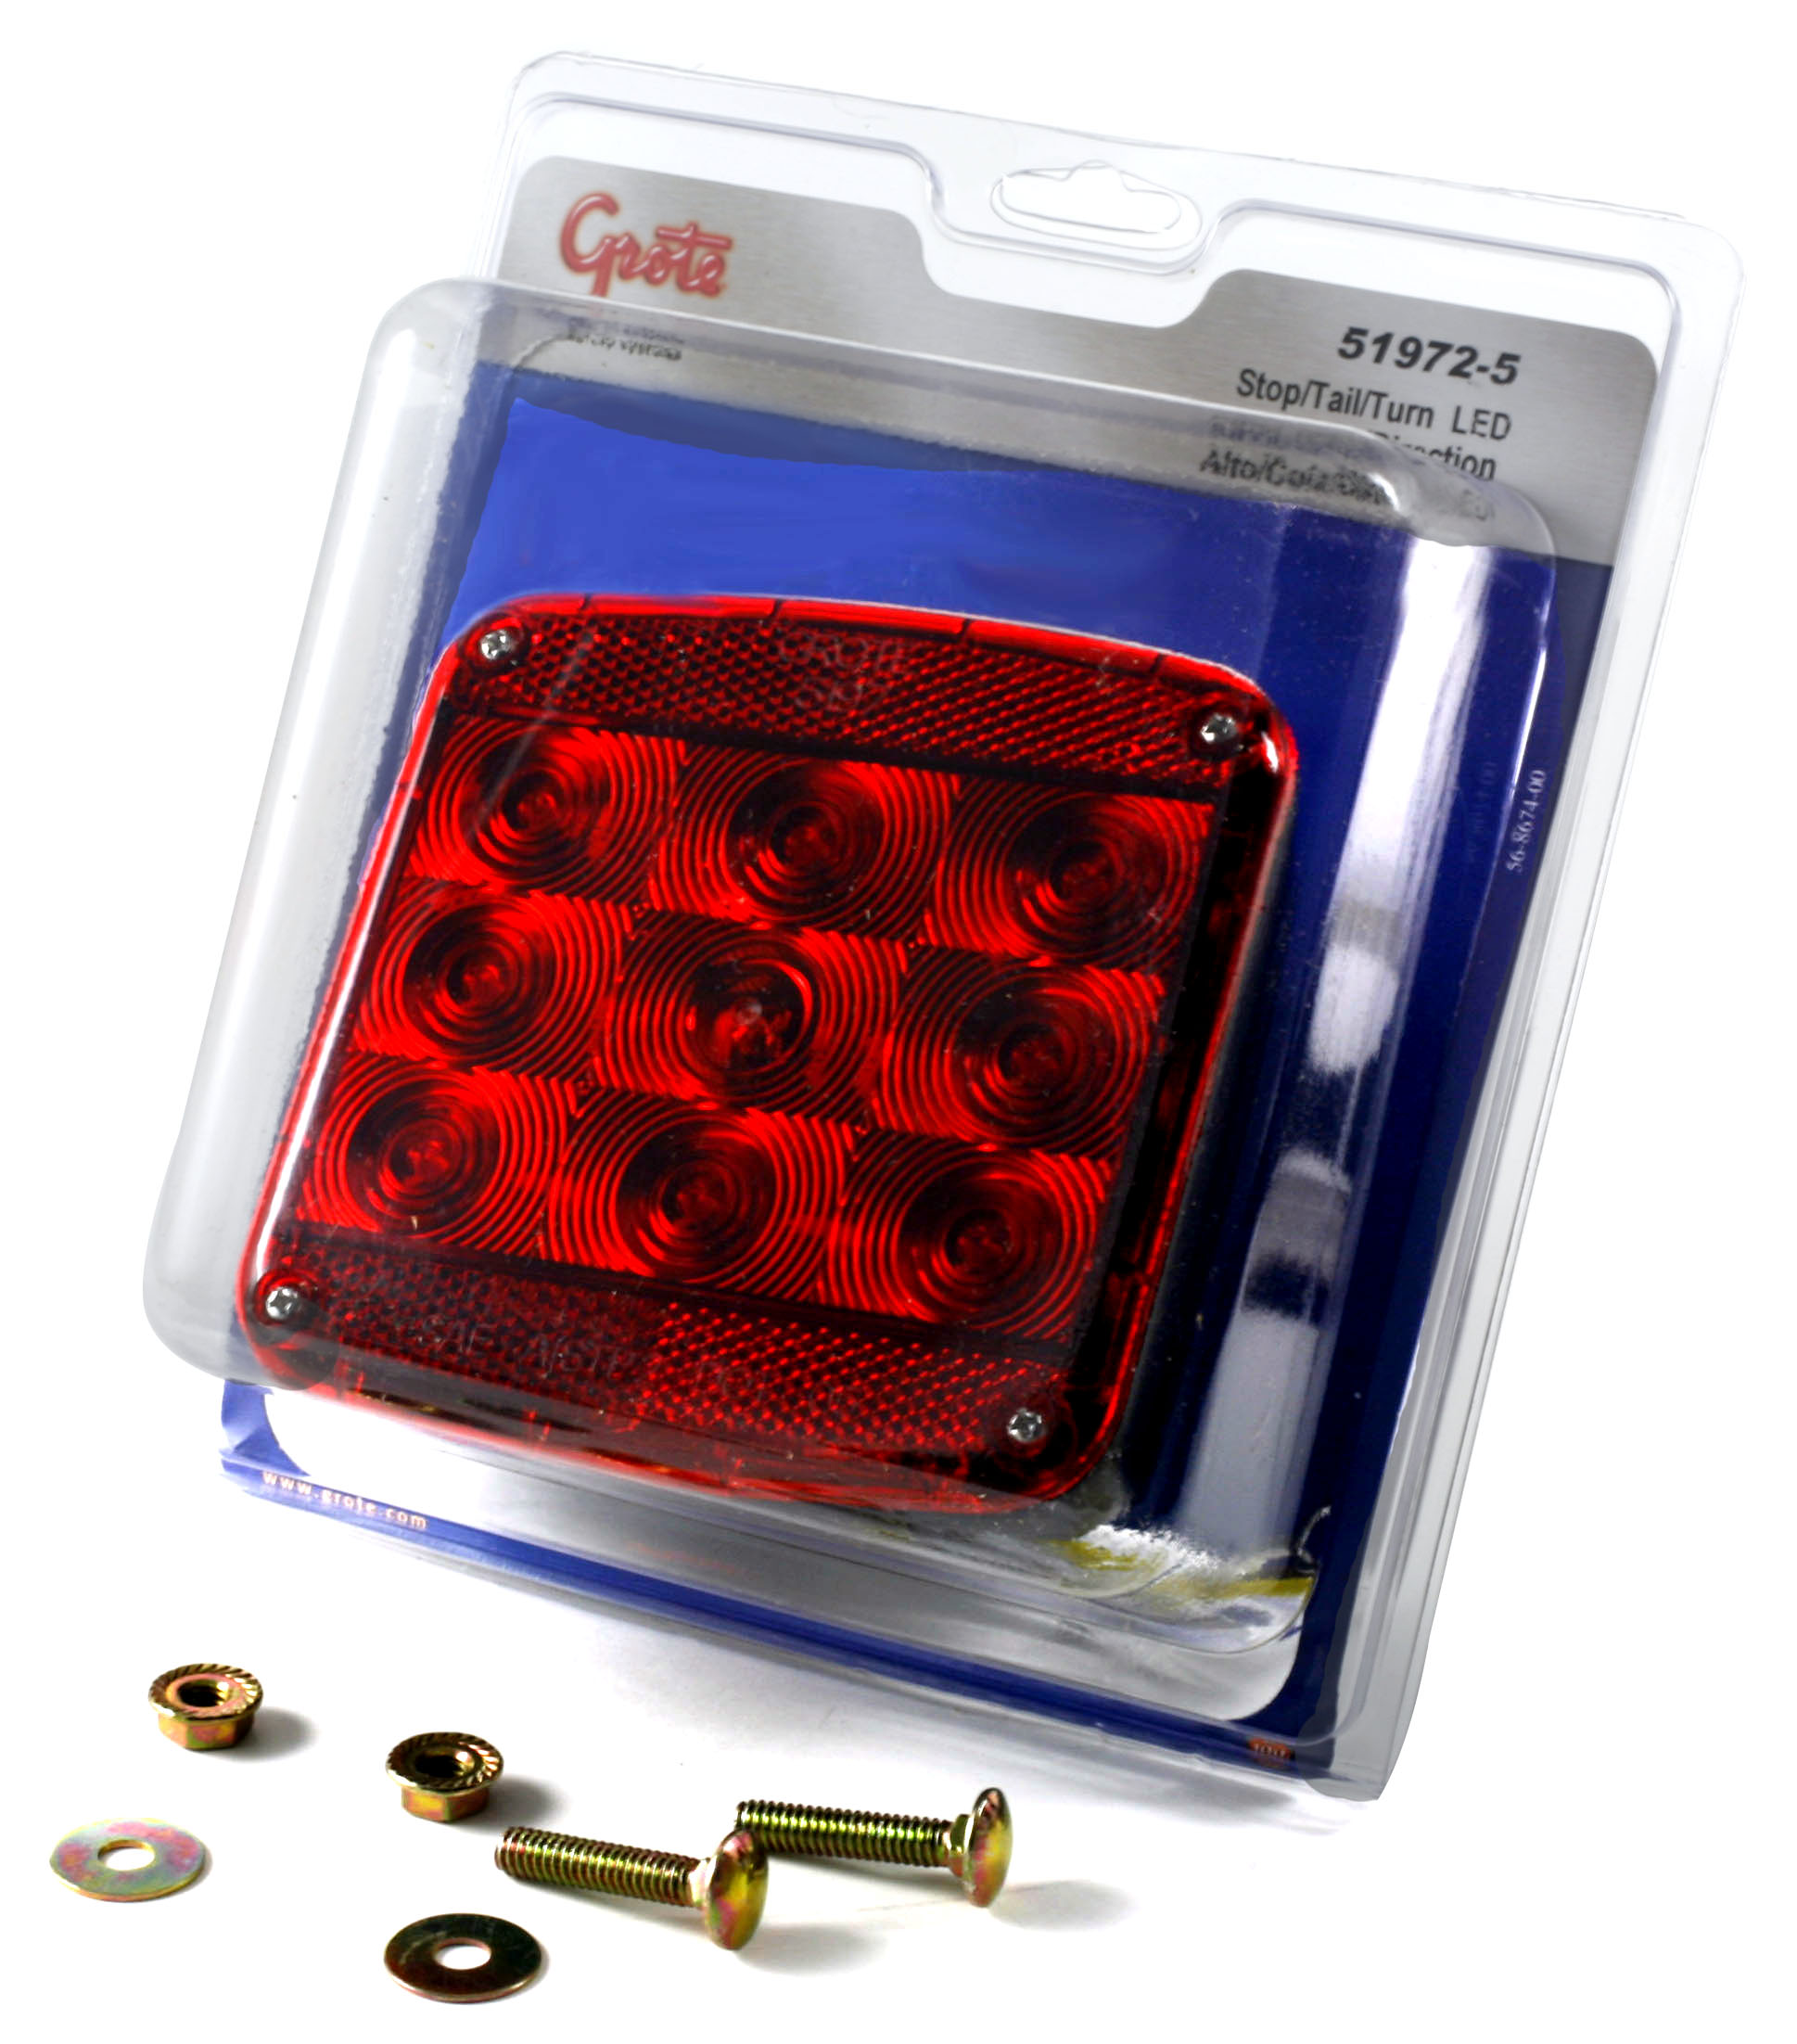 Grote Industries - 51972-5 – LED Submersible Trailer Lighting Kit, Stop/Tail/Turn Replacement w/ License Window, LH, Red